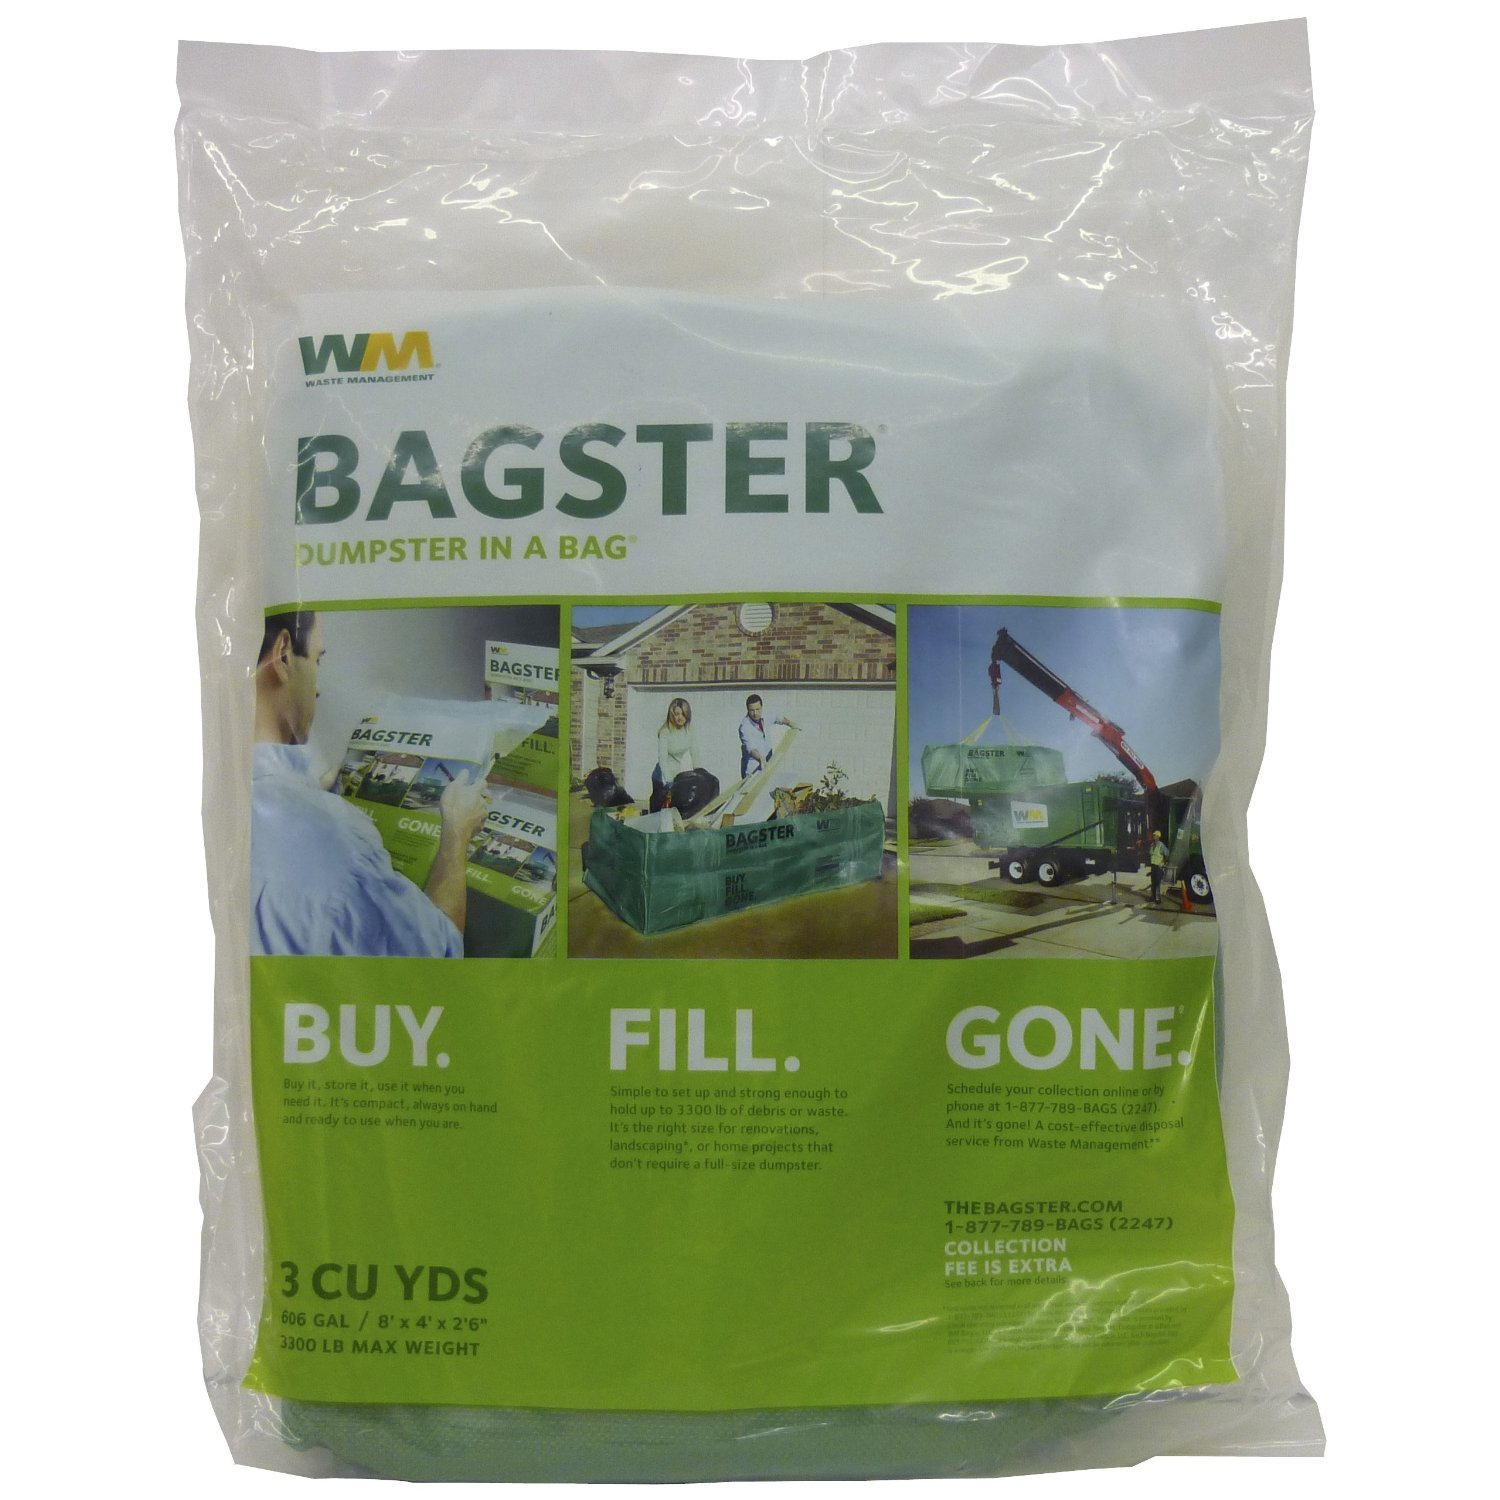 Review of the Bagster Bag from Waste Management - What's ...